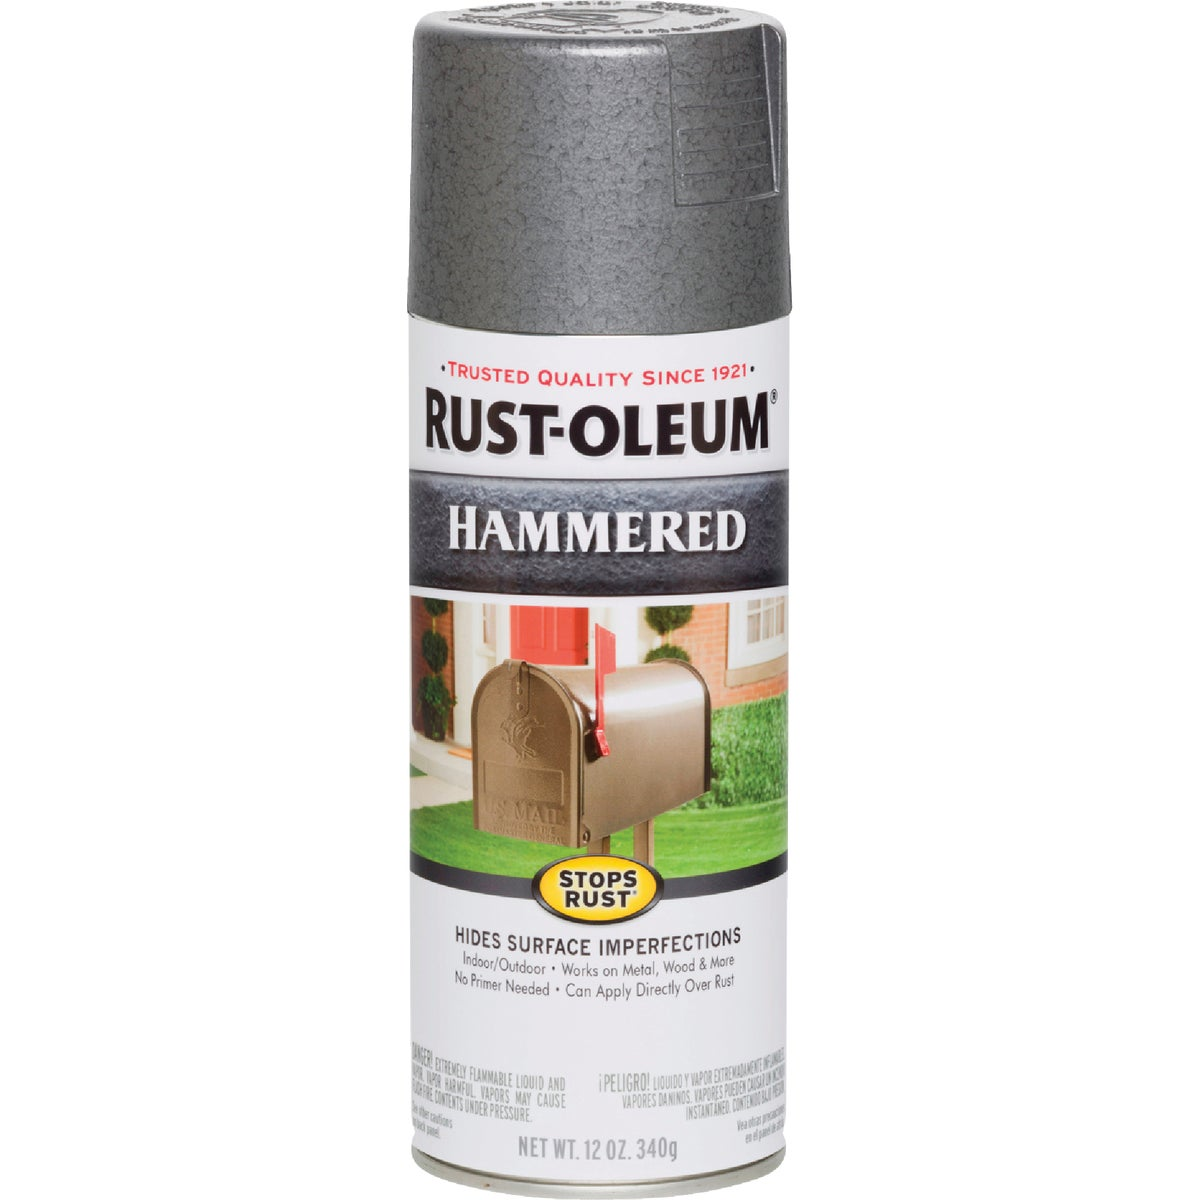 GRAY HAMMERD SPRAY PAINT - 7214-830 by Rustoleum